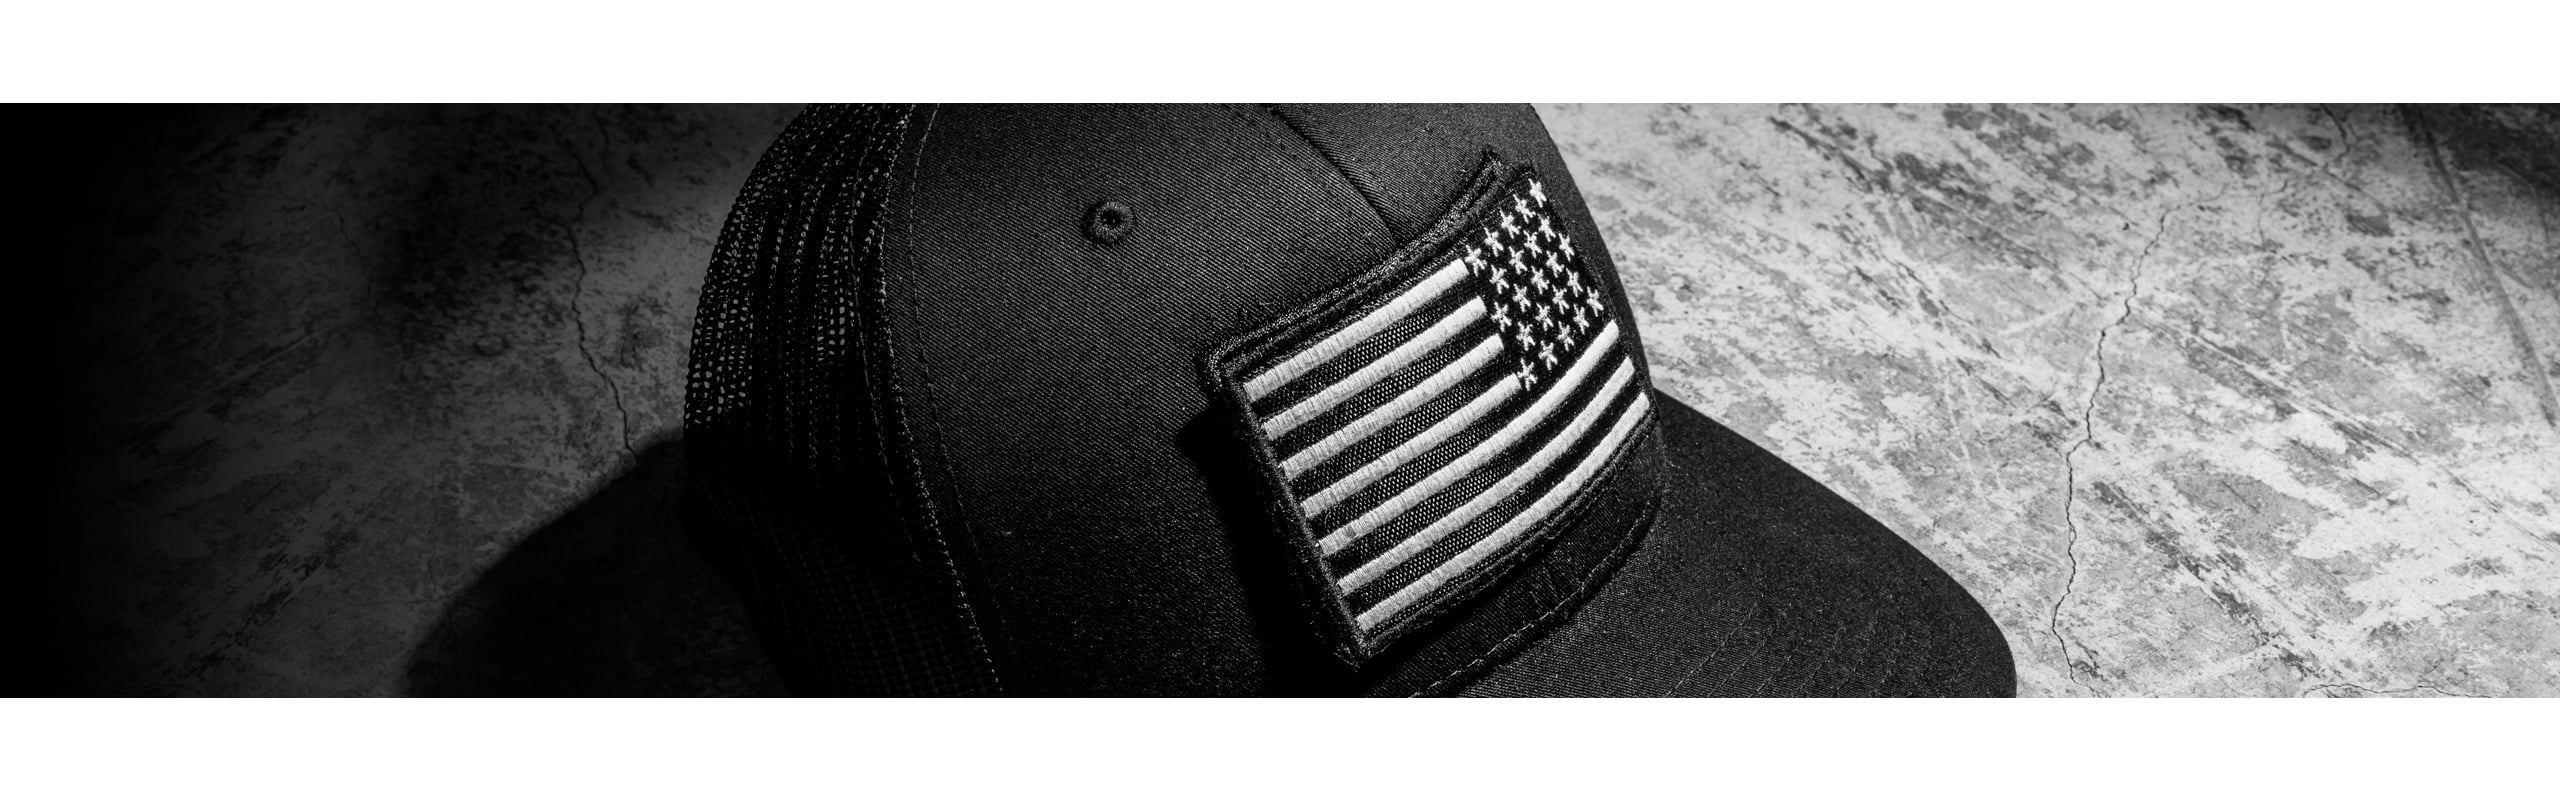 Trucker Hat - Xenios USA Blank Patch - Black - One size